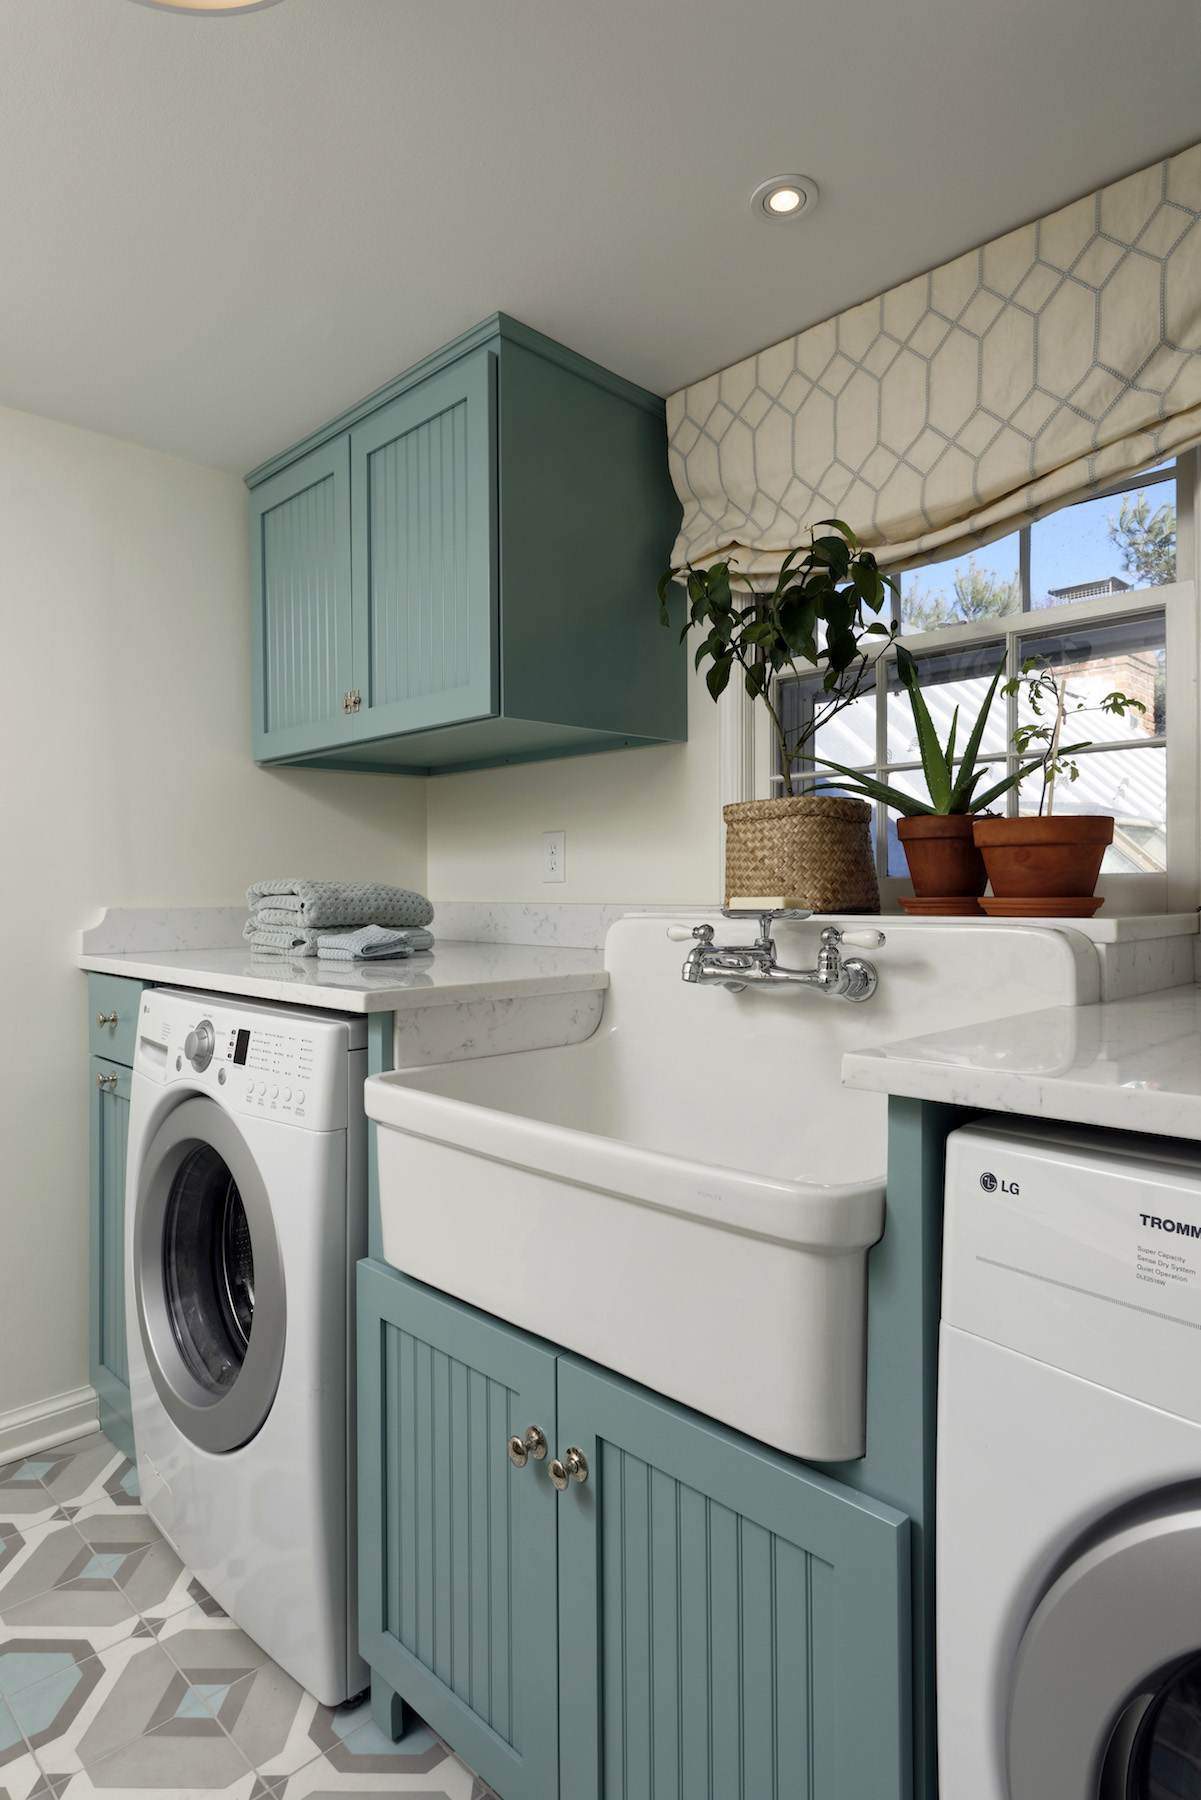 The Biggest Home Decor Mistakes You Can Make: 12 Laundry Mistakes You're Probably Making